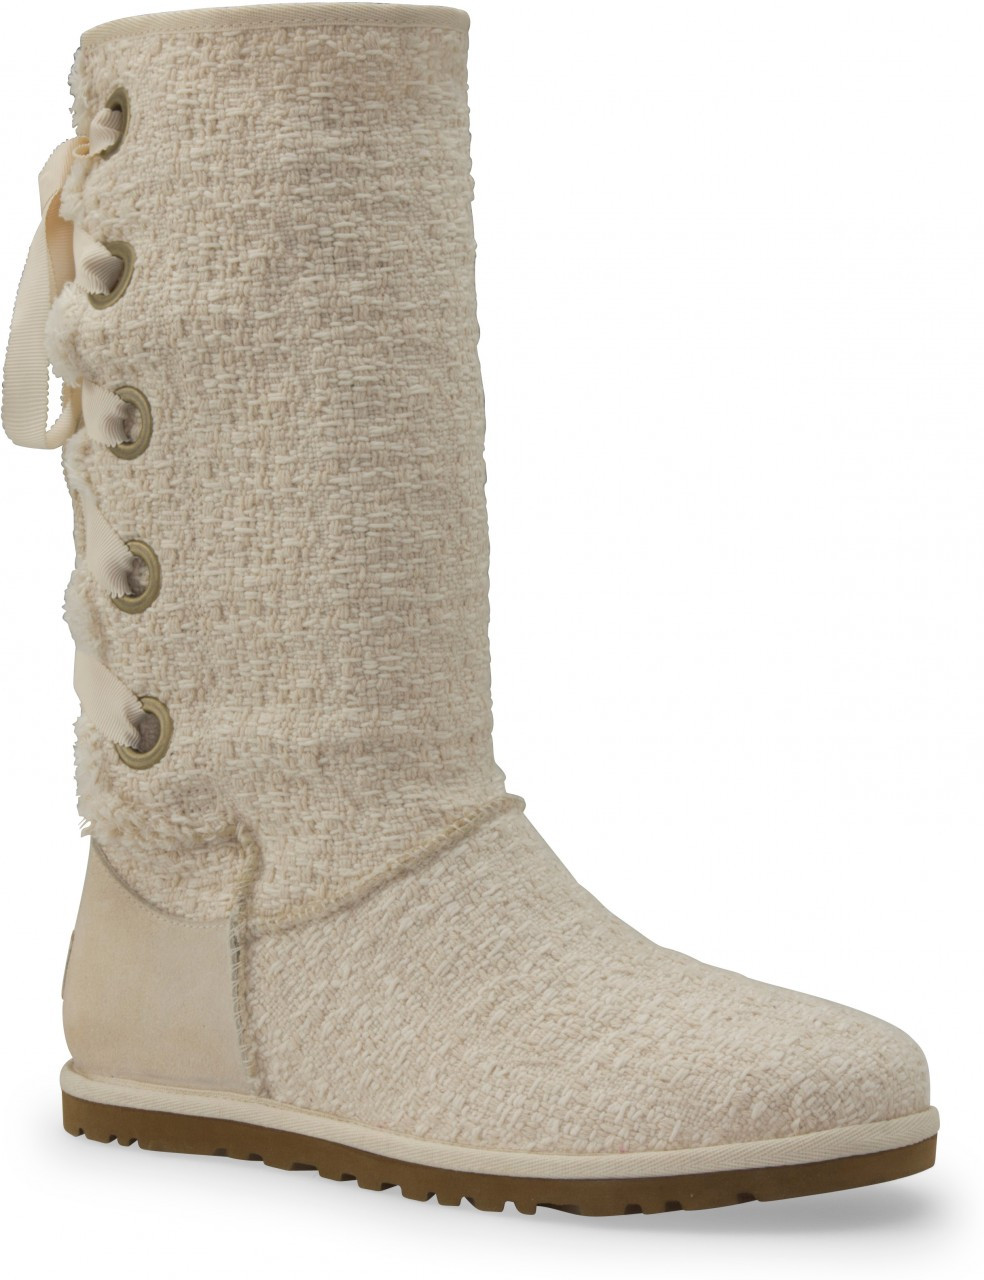 2f49839e53f Ugg Heirloom Lace Up Boots Cheap - cheap watches mgc-gas.com